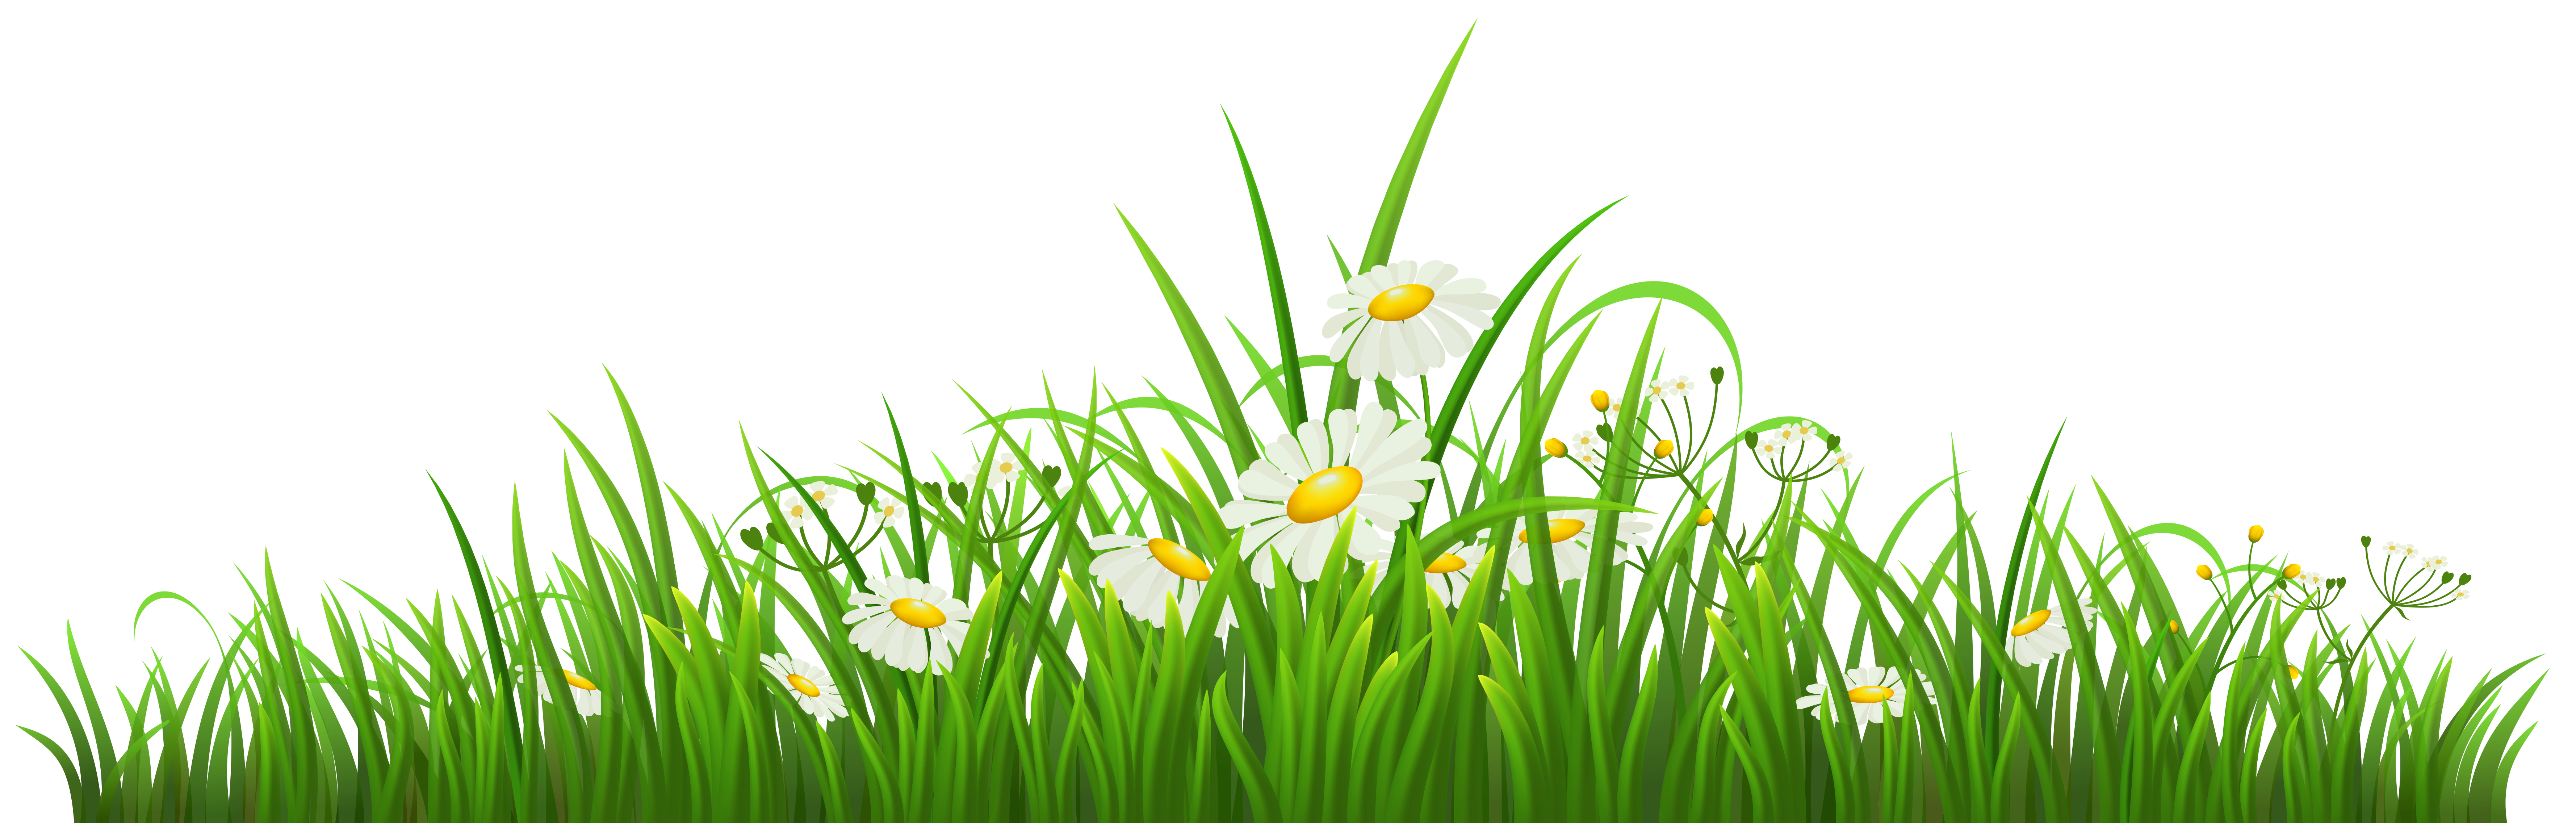 Dandelion clipart rice grass. Transparent with chamomile png